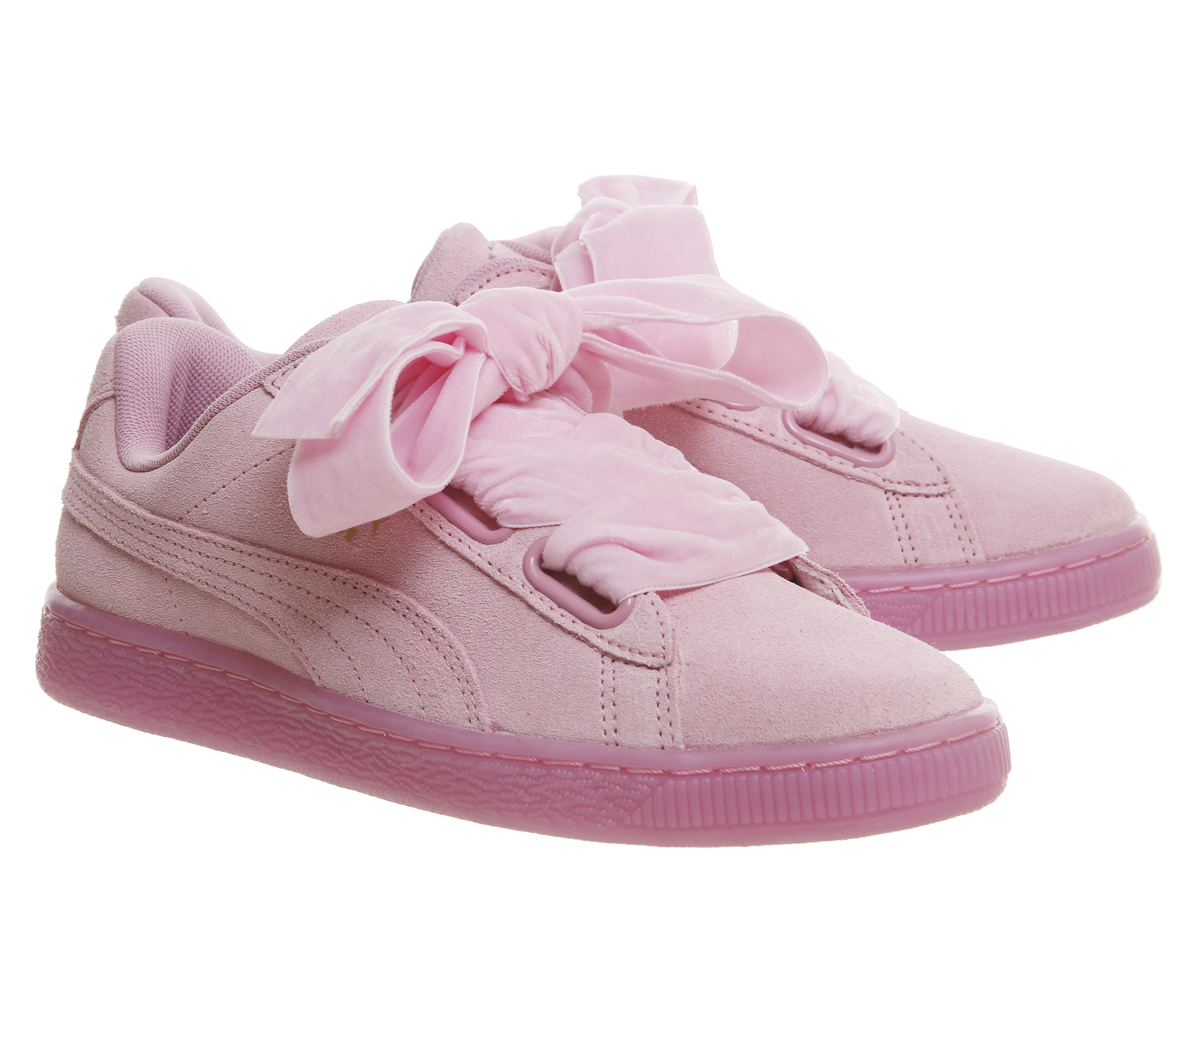 puma shoes suede womens. womens-puma-suede-heart-prism-pink-trainers-shoes puma shoes suede womens n